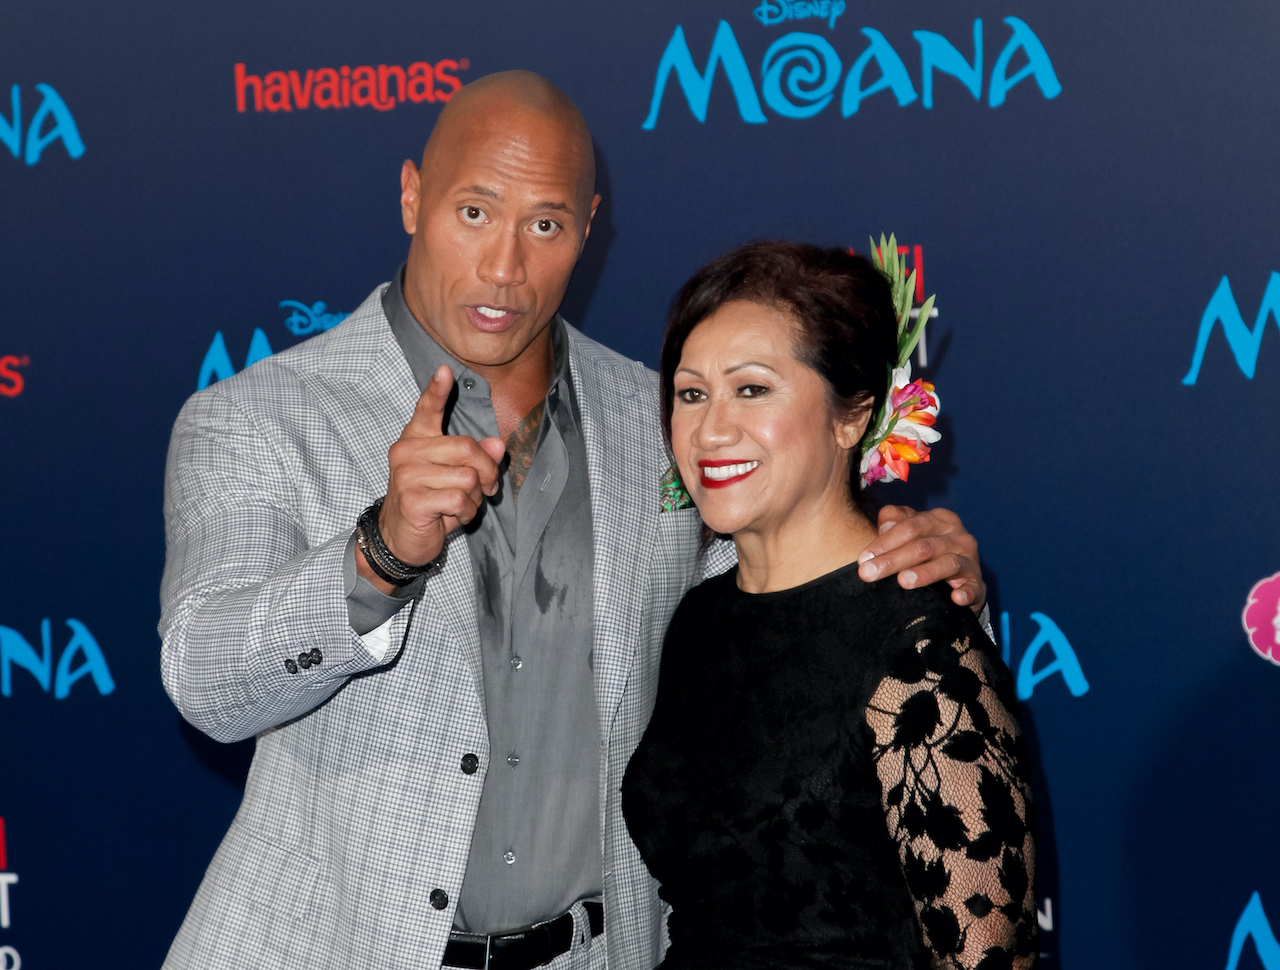 Dwayne Johnson and his mother, Ata Johnson, attend the premiere of Disney's 'Moana'